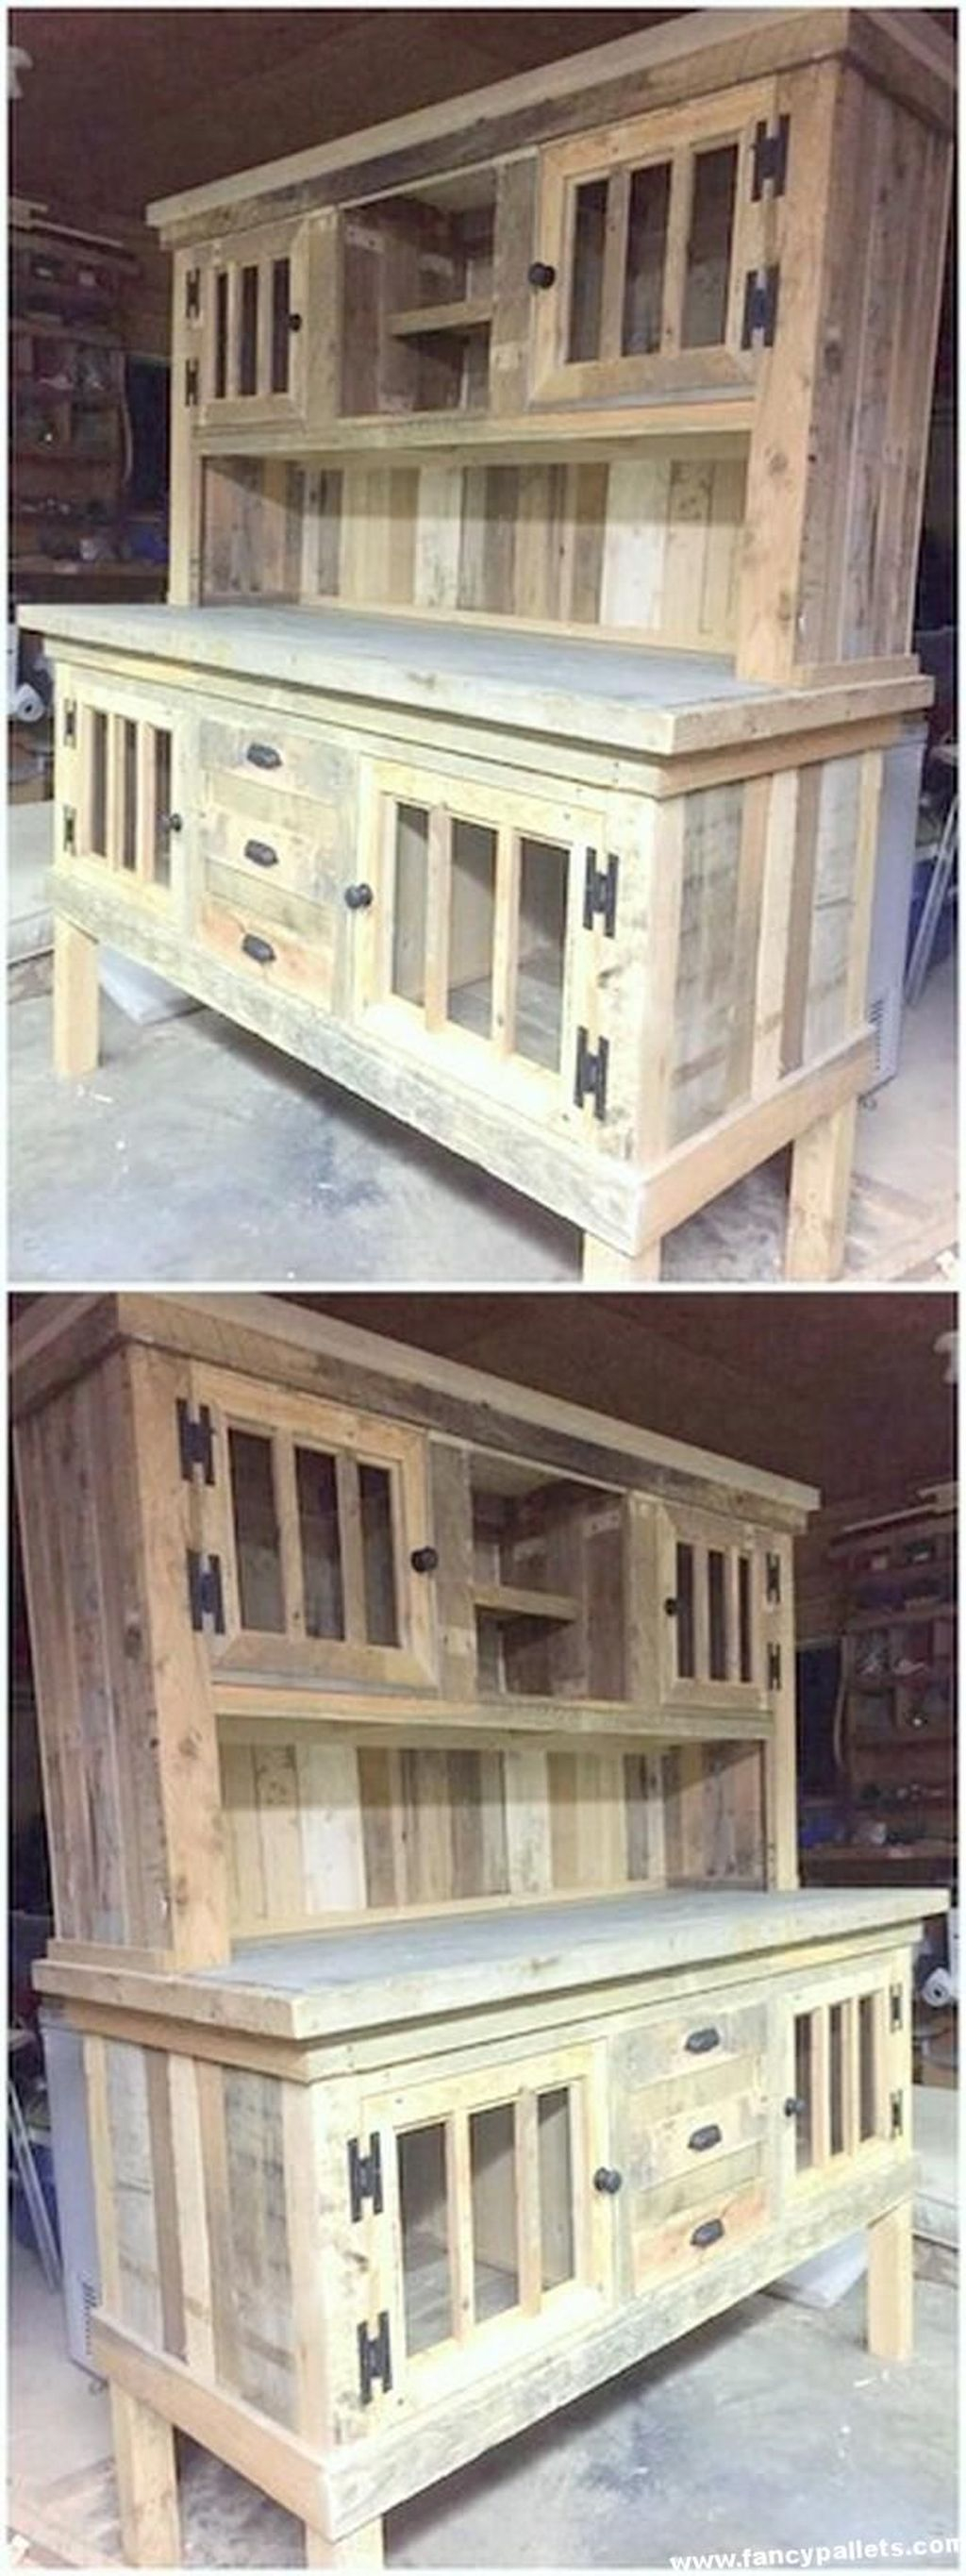 Incredible Diy Kitchen Pallets Ideas You Need To See Today 33